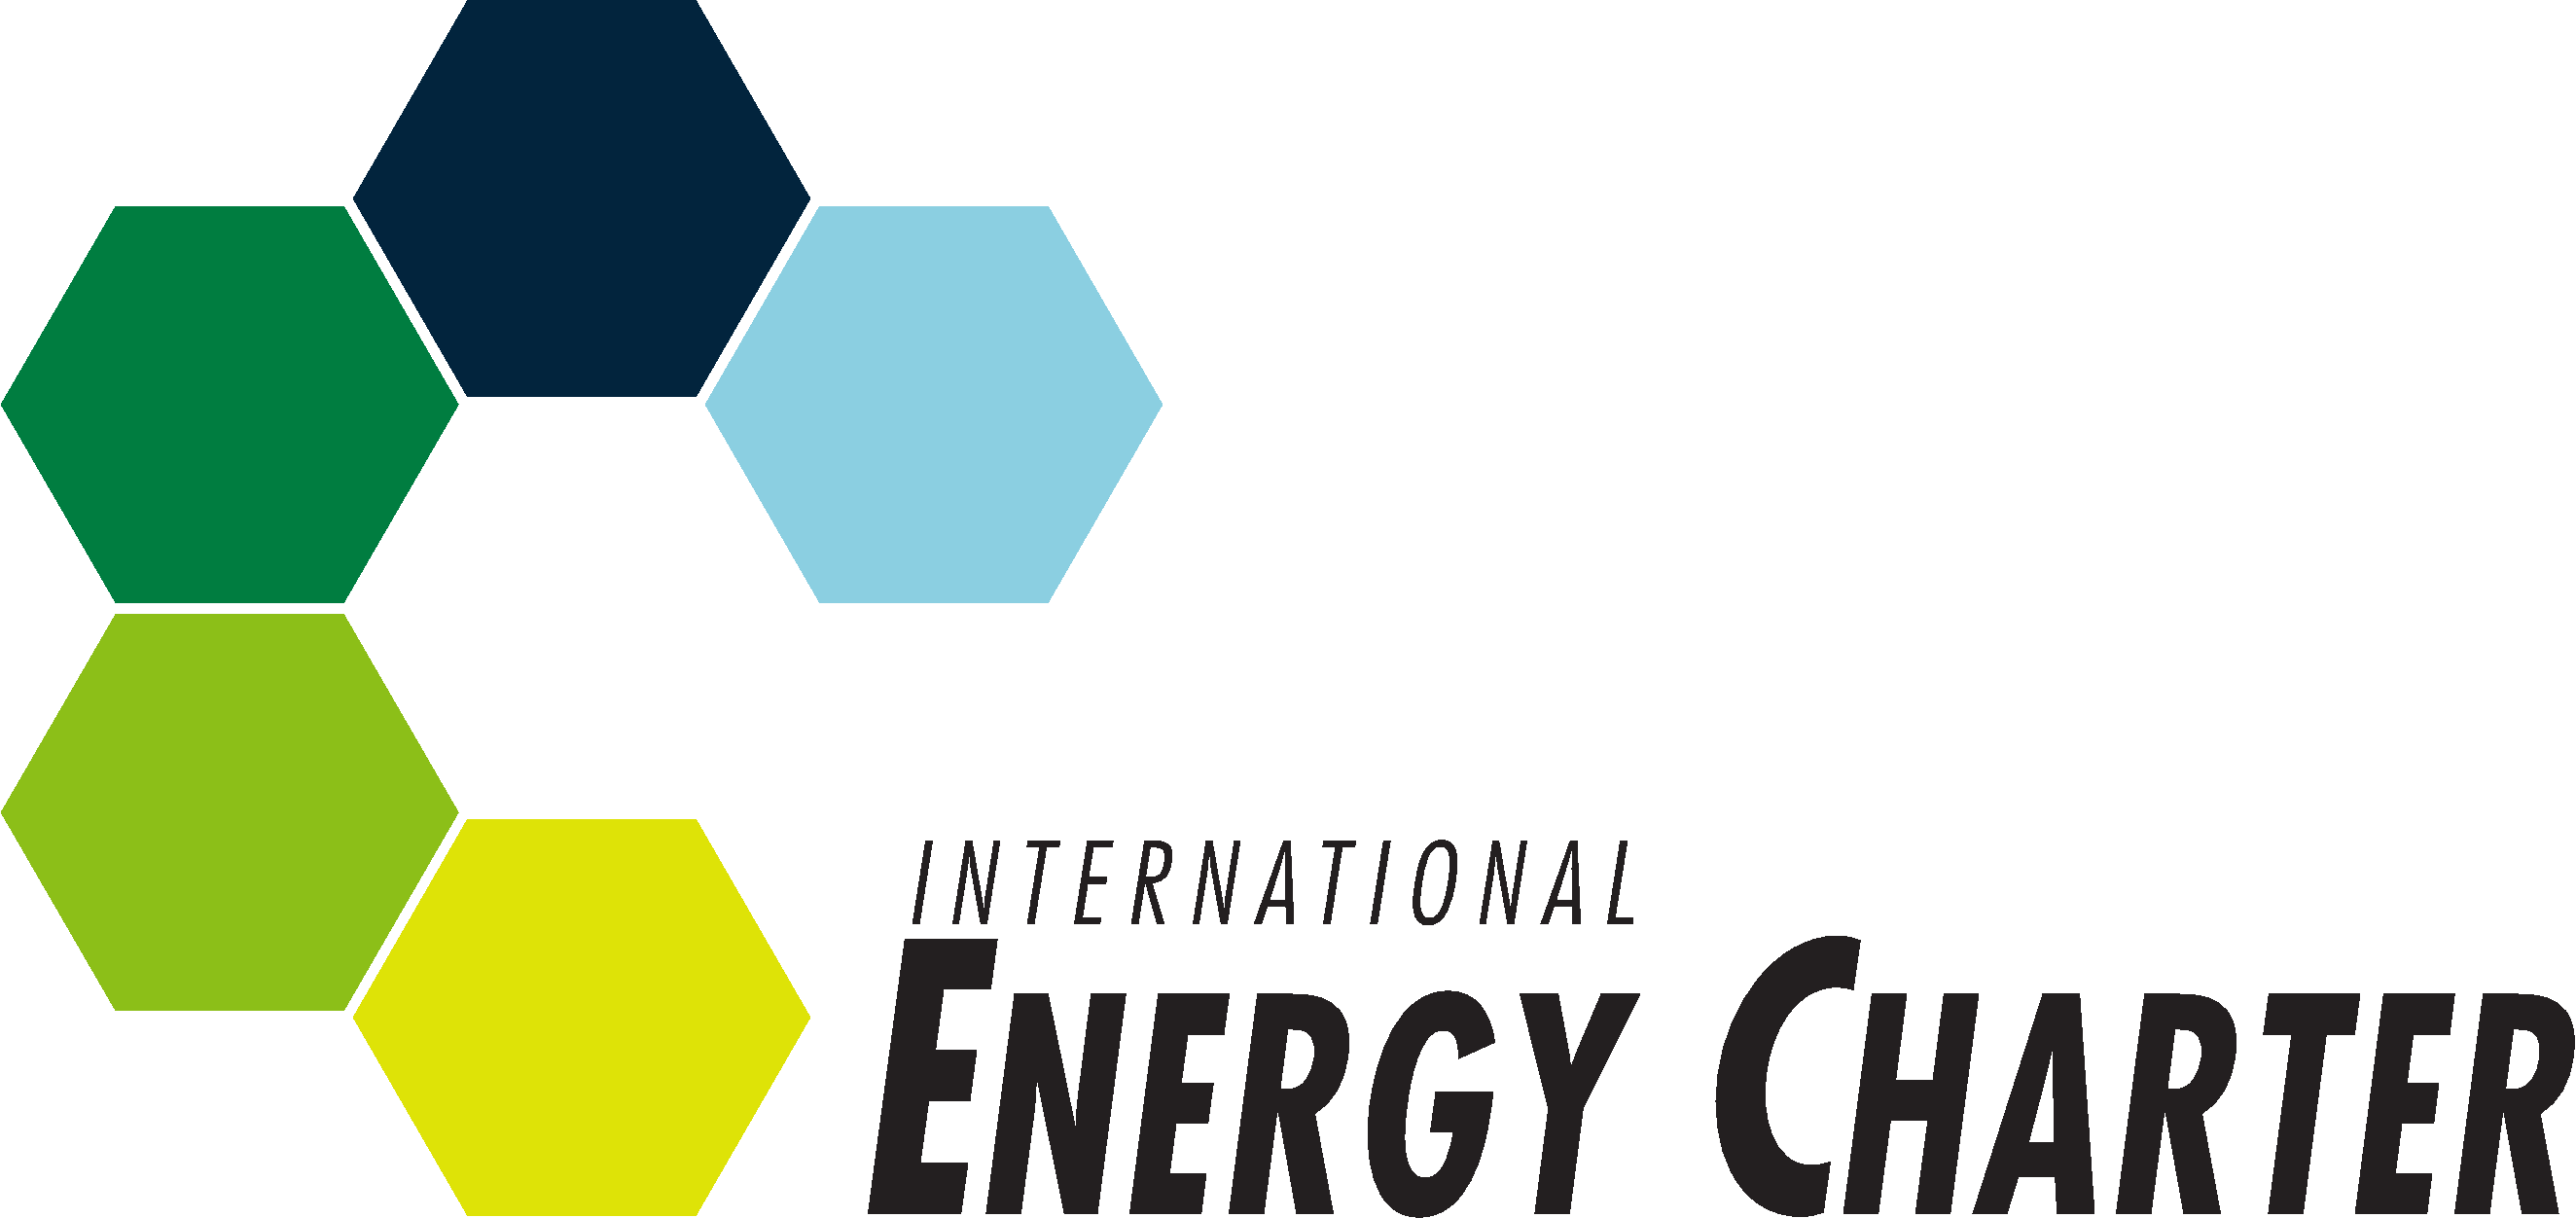 20th Anniversary of the Energy Charter Treaty's Entry into Force